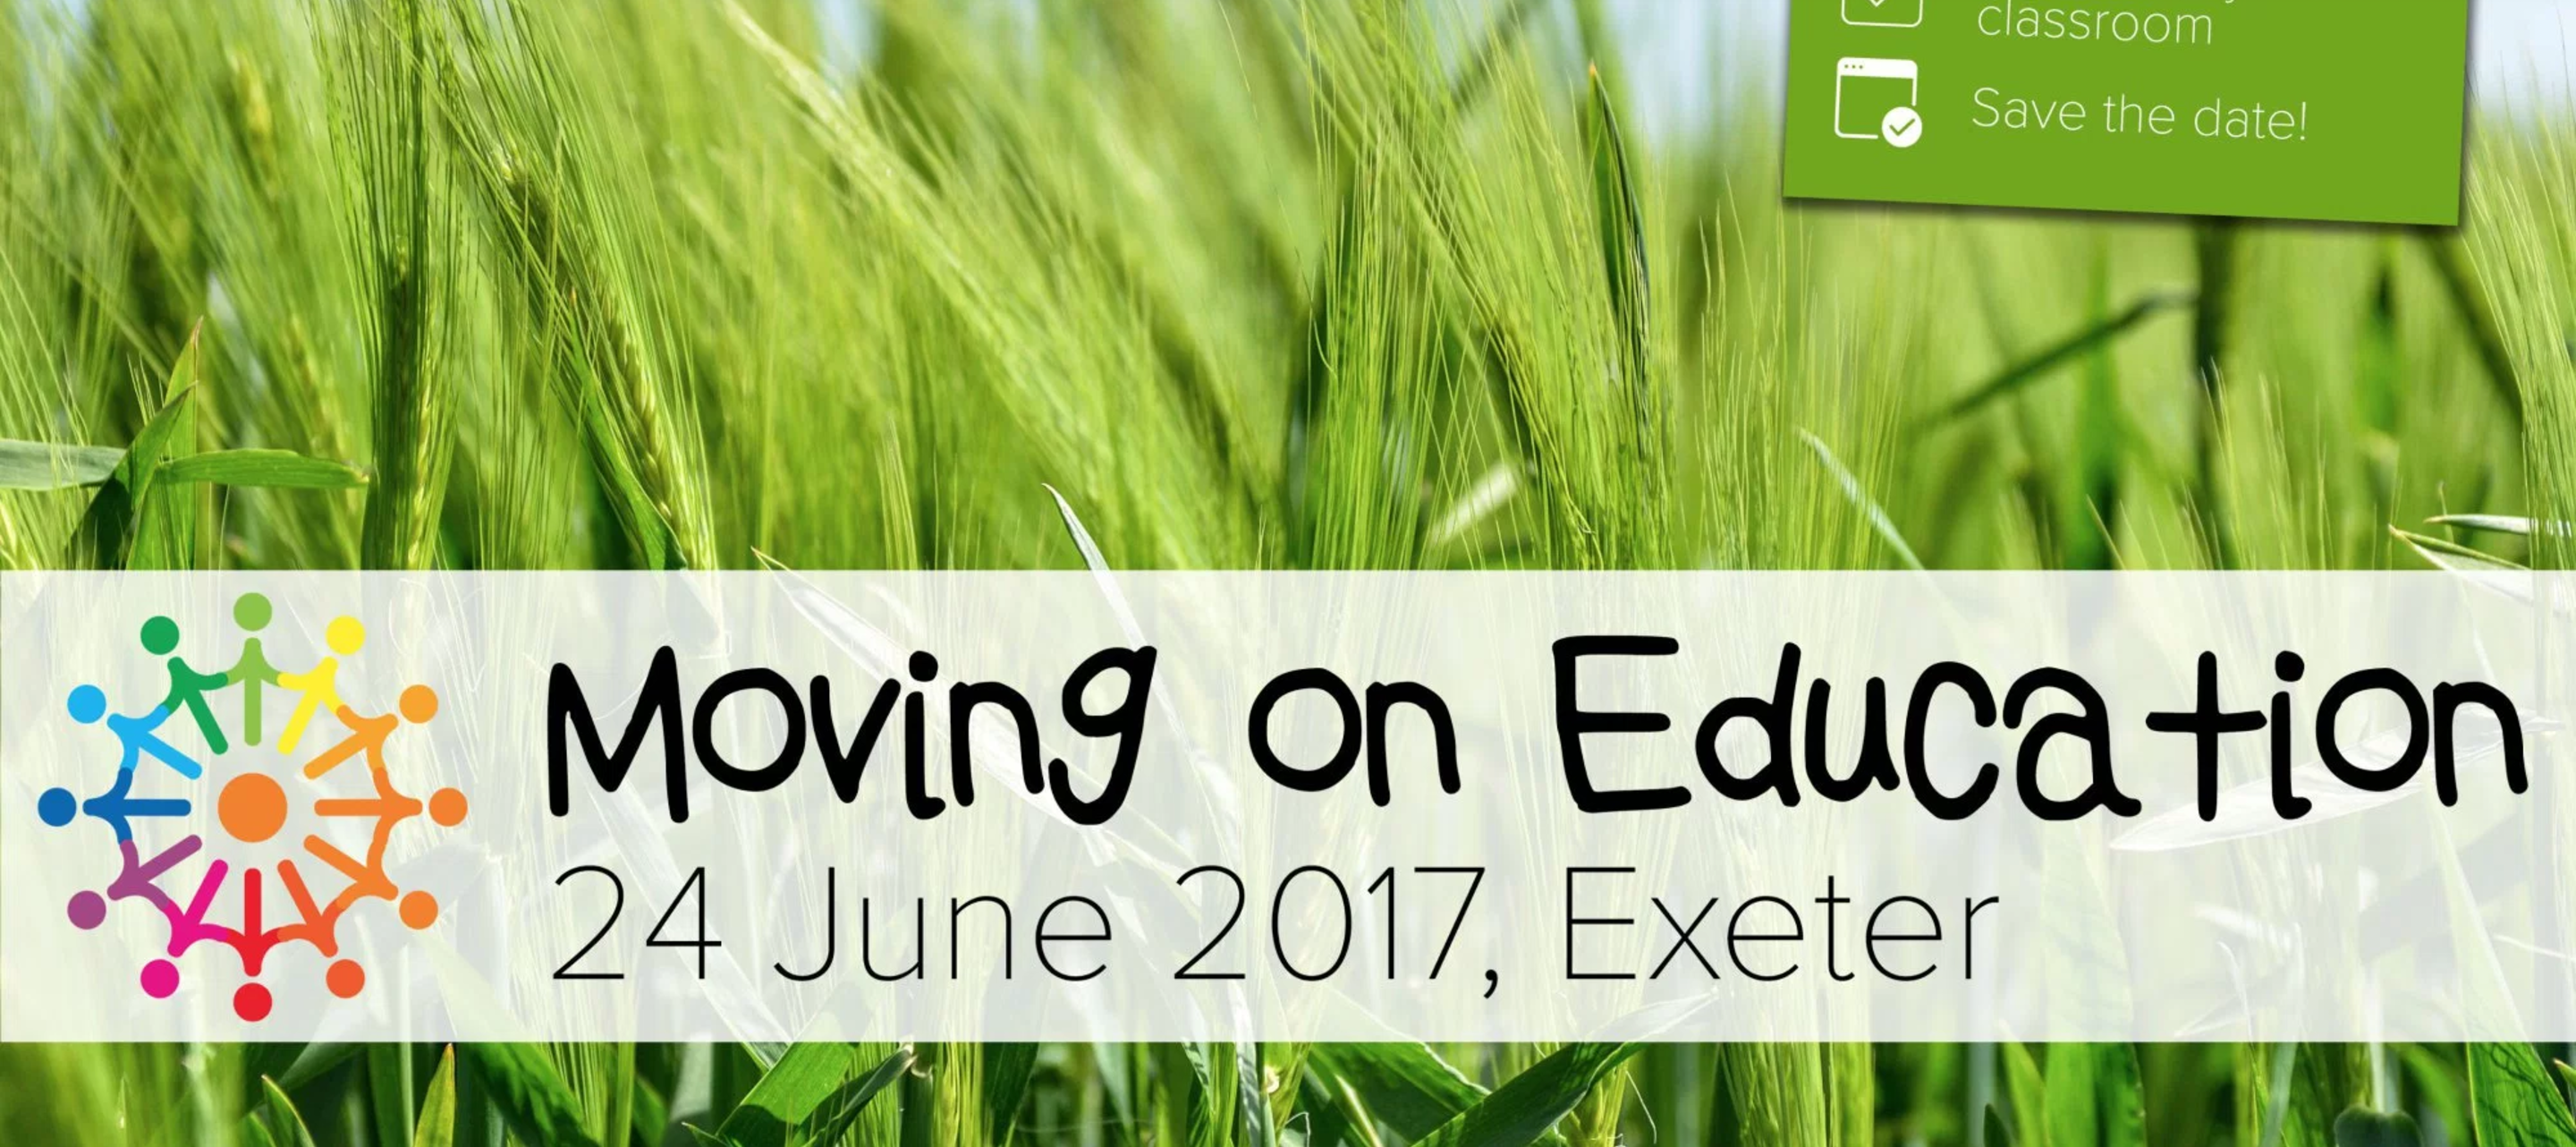 Moving on Education